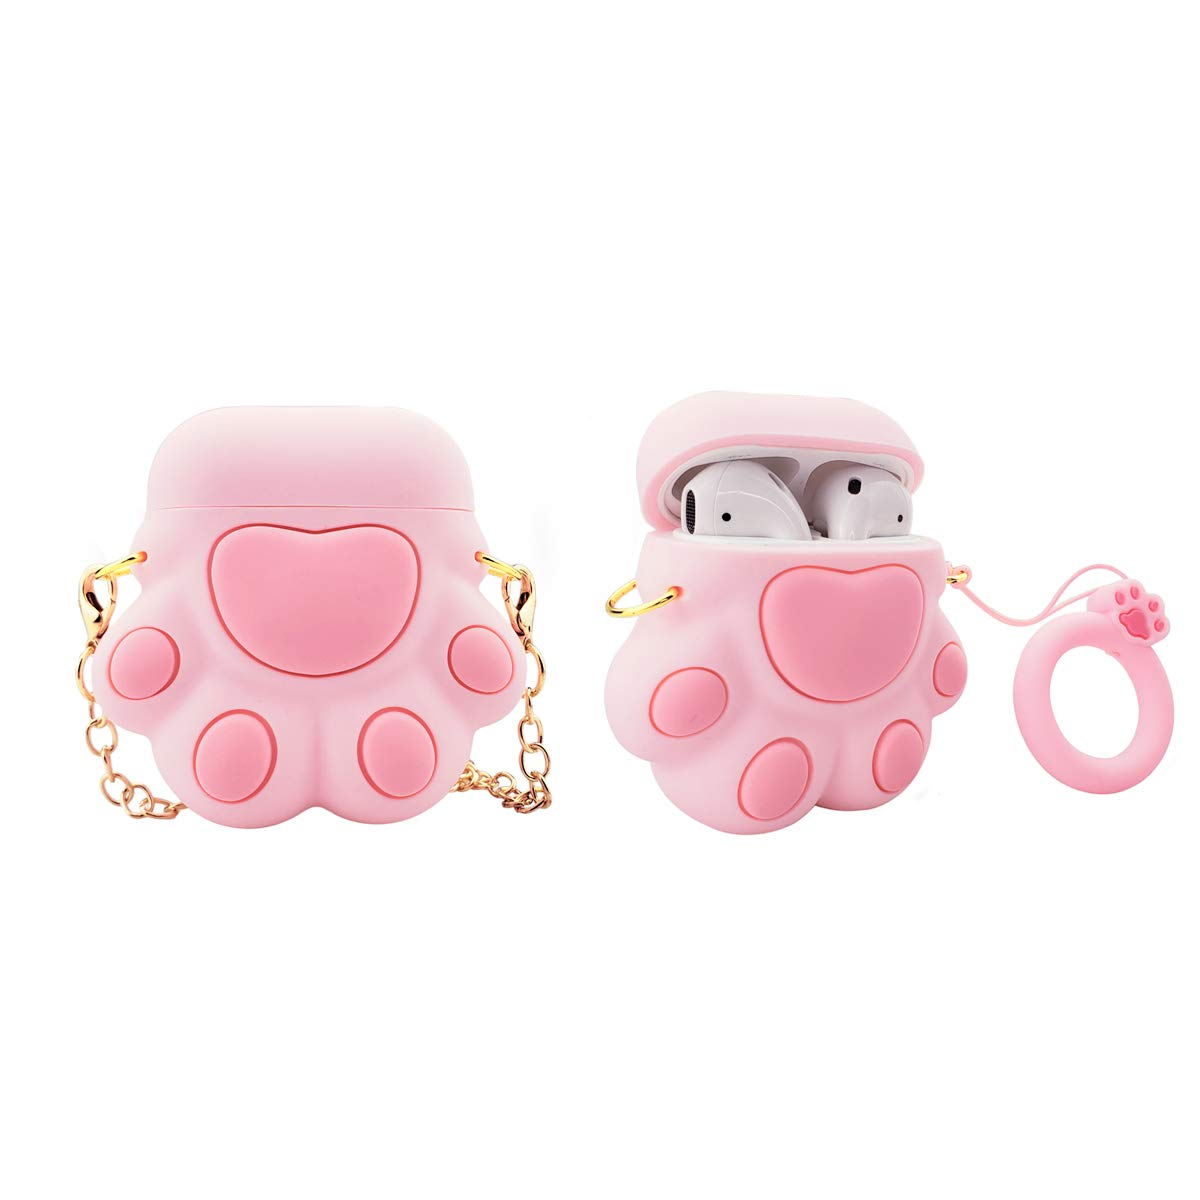 MOLOVA Case for Airpods 1&2 Case,Silicone 3D Cute Funny Cartoon Character Kawaii Airpods Cover Compatiable with Wireless Charging Case for Kids Girls Teens Women Boys (Pink Cat Claw)